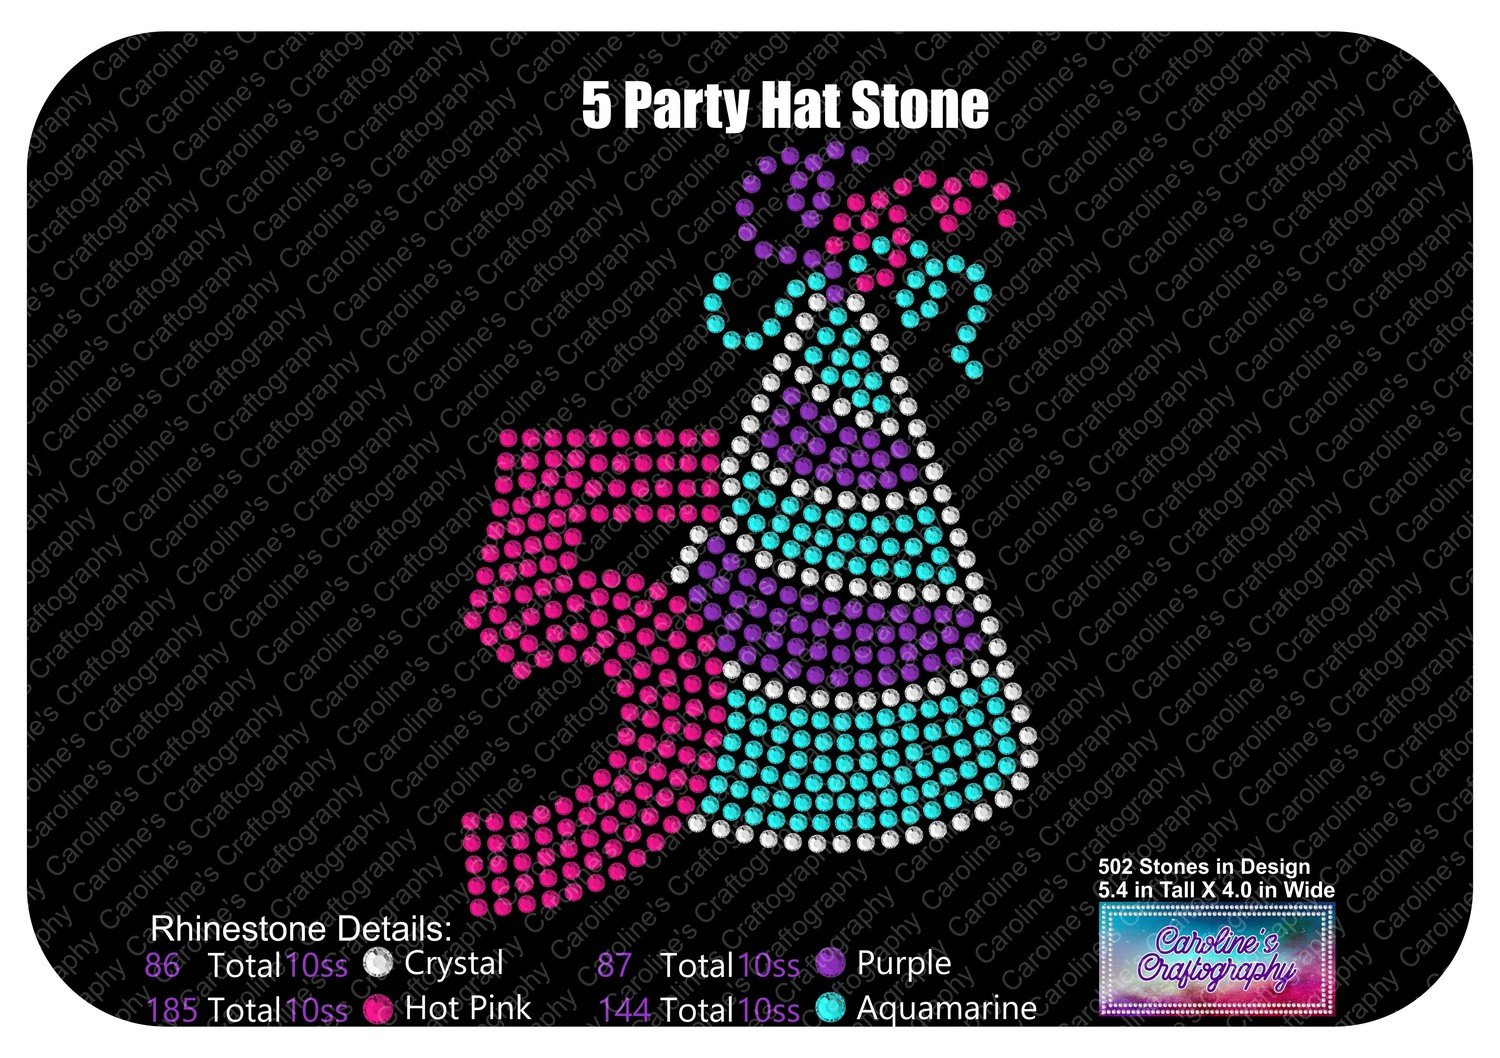 Party Hat Number 5 Stone